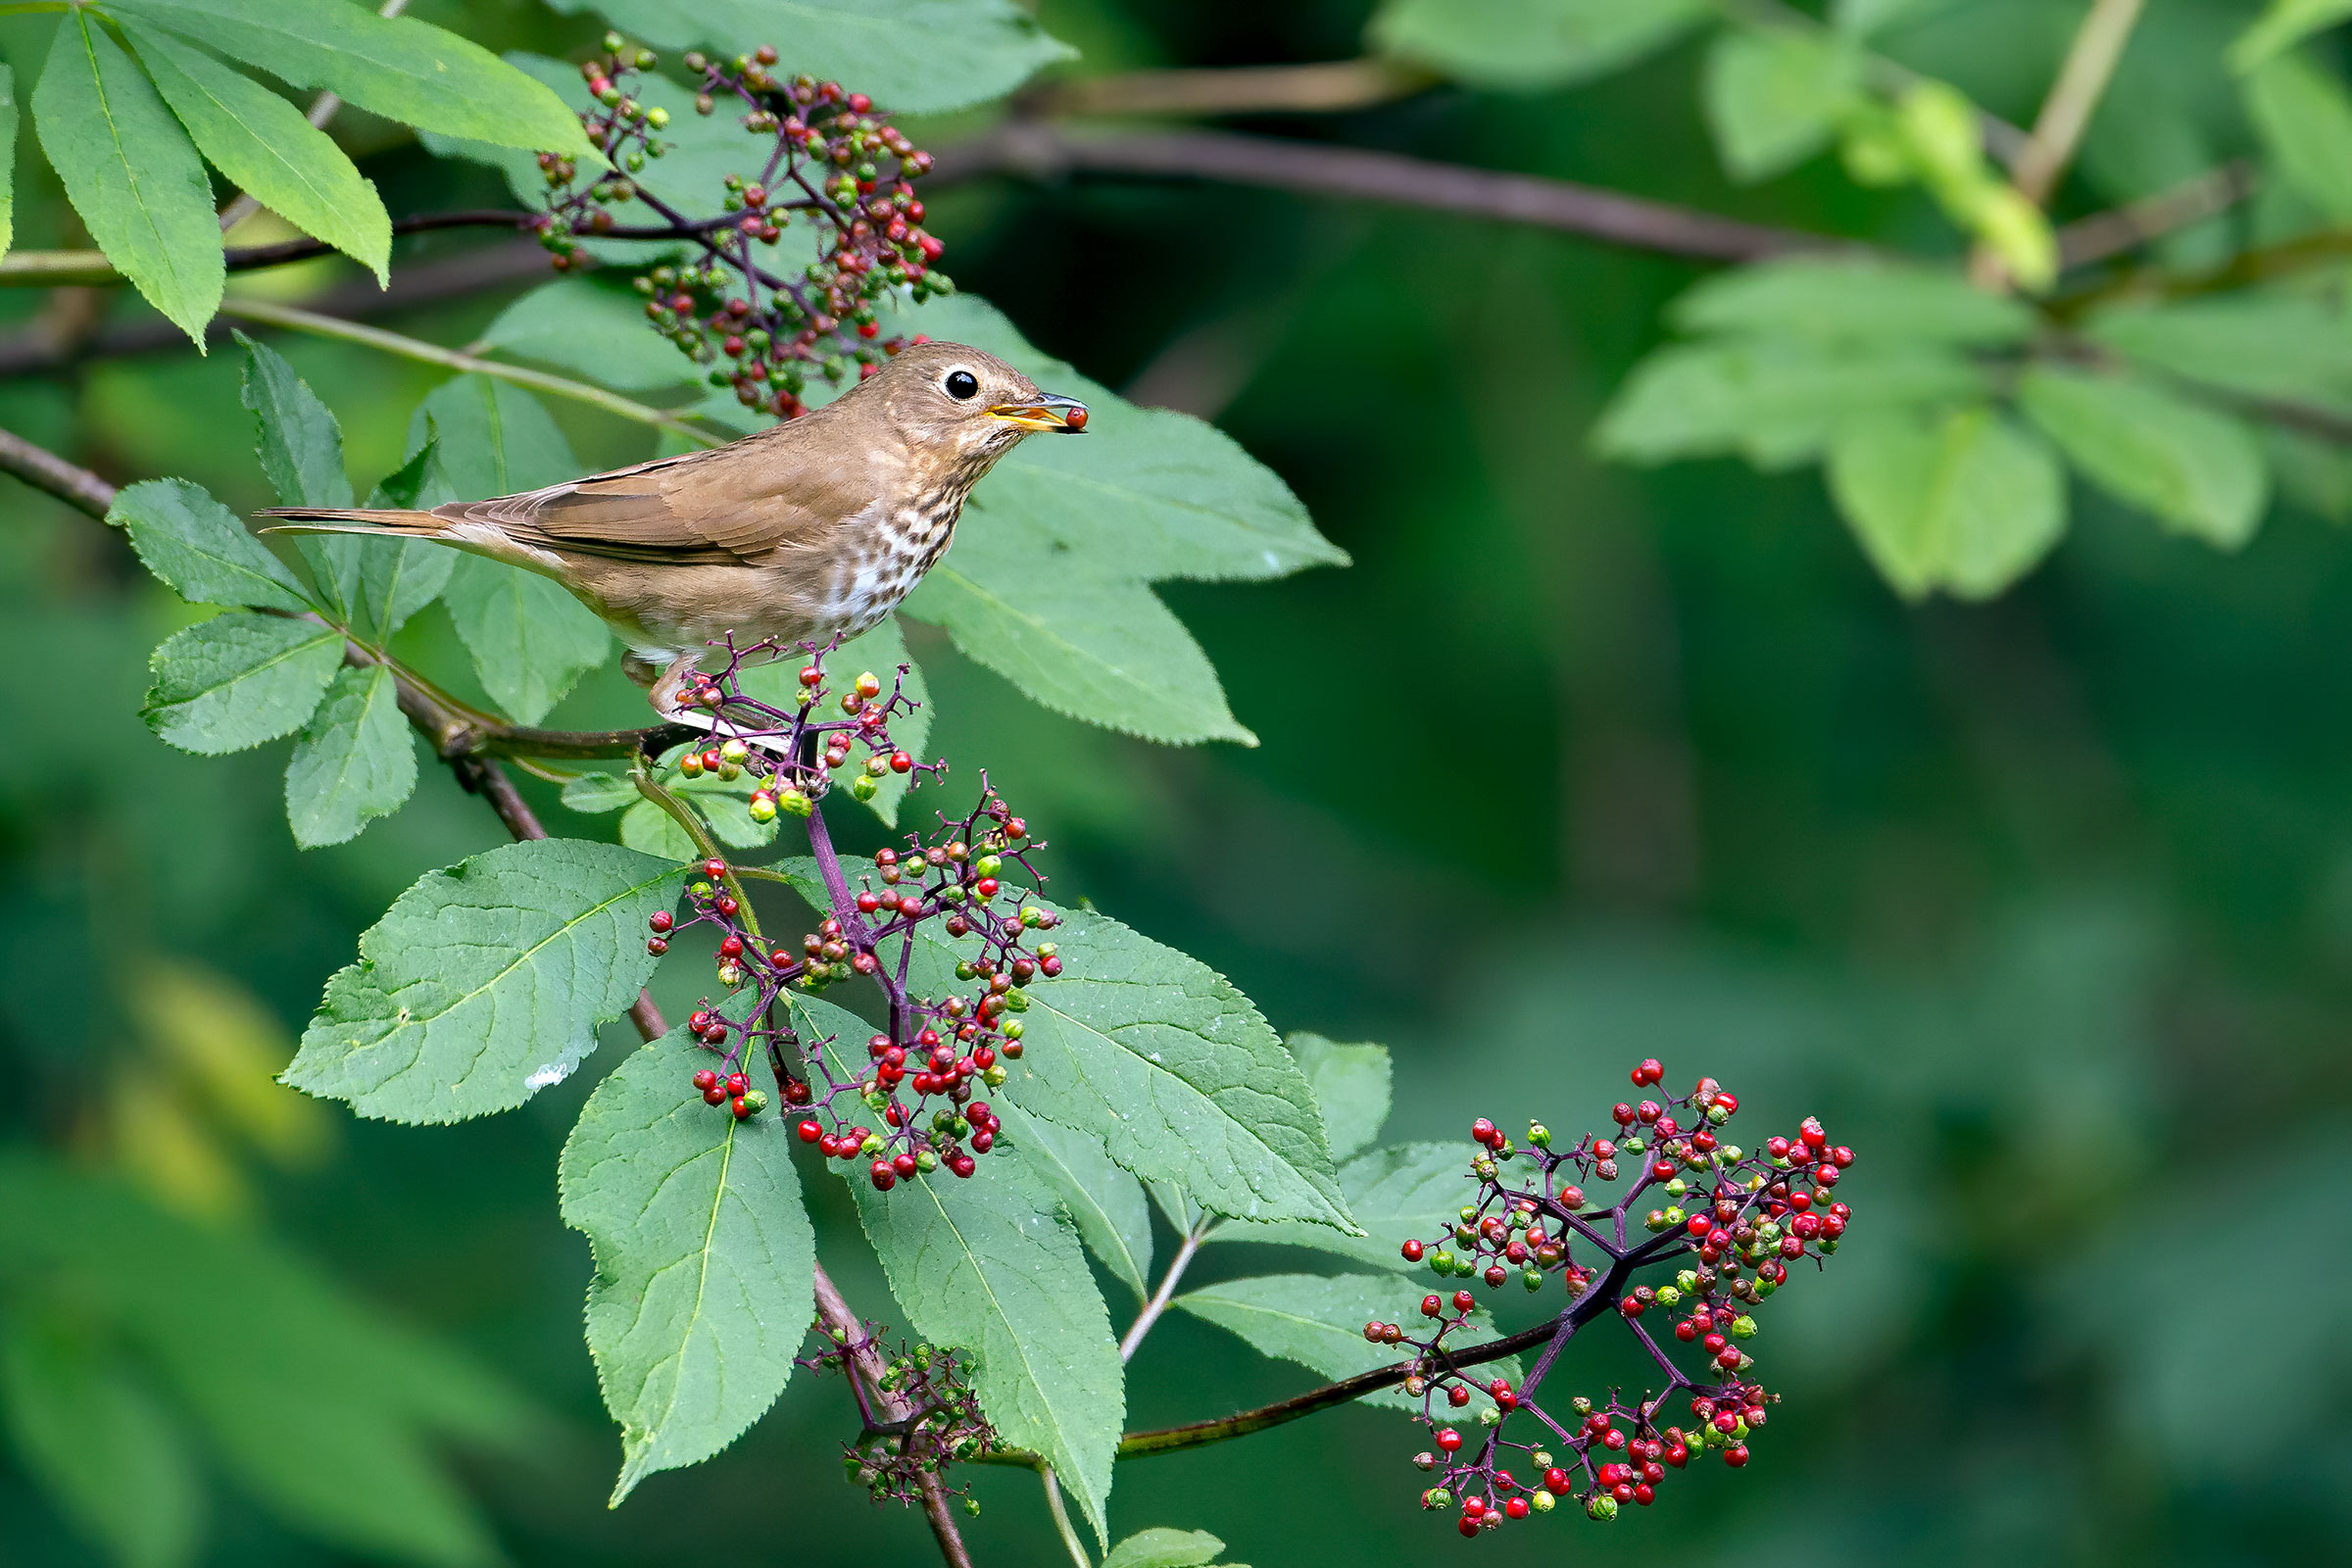 Swainson's Thrushes will burn their own muscles as energy if it'll get them to a food-rich rest stop, maybe one with Red Elderberries pictured here. Mick Thompson